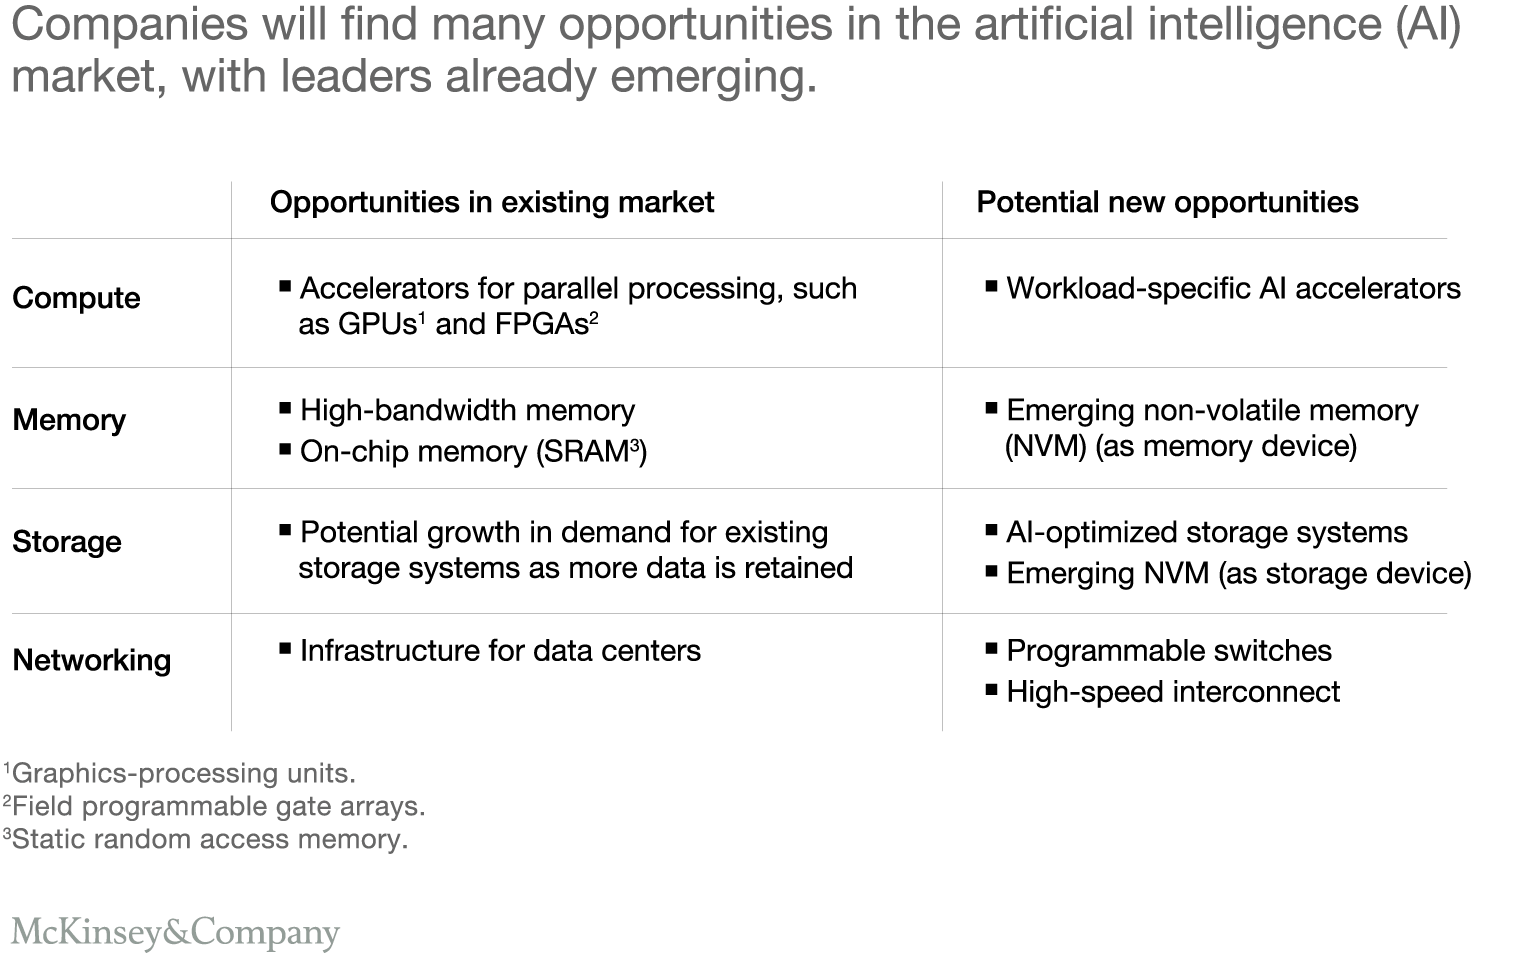 AI hardware: Value creation for semiconductor companies | McKinsey